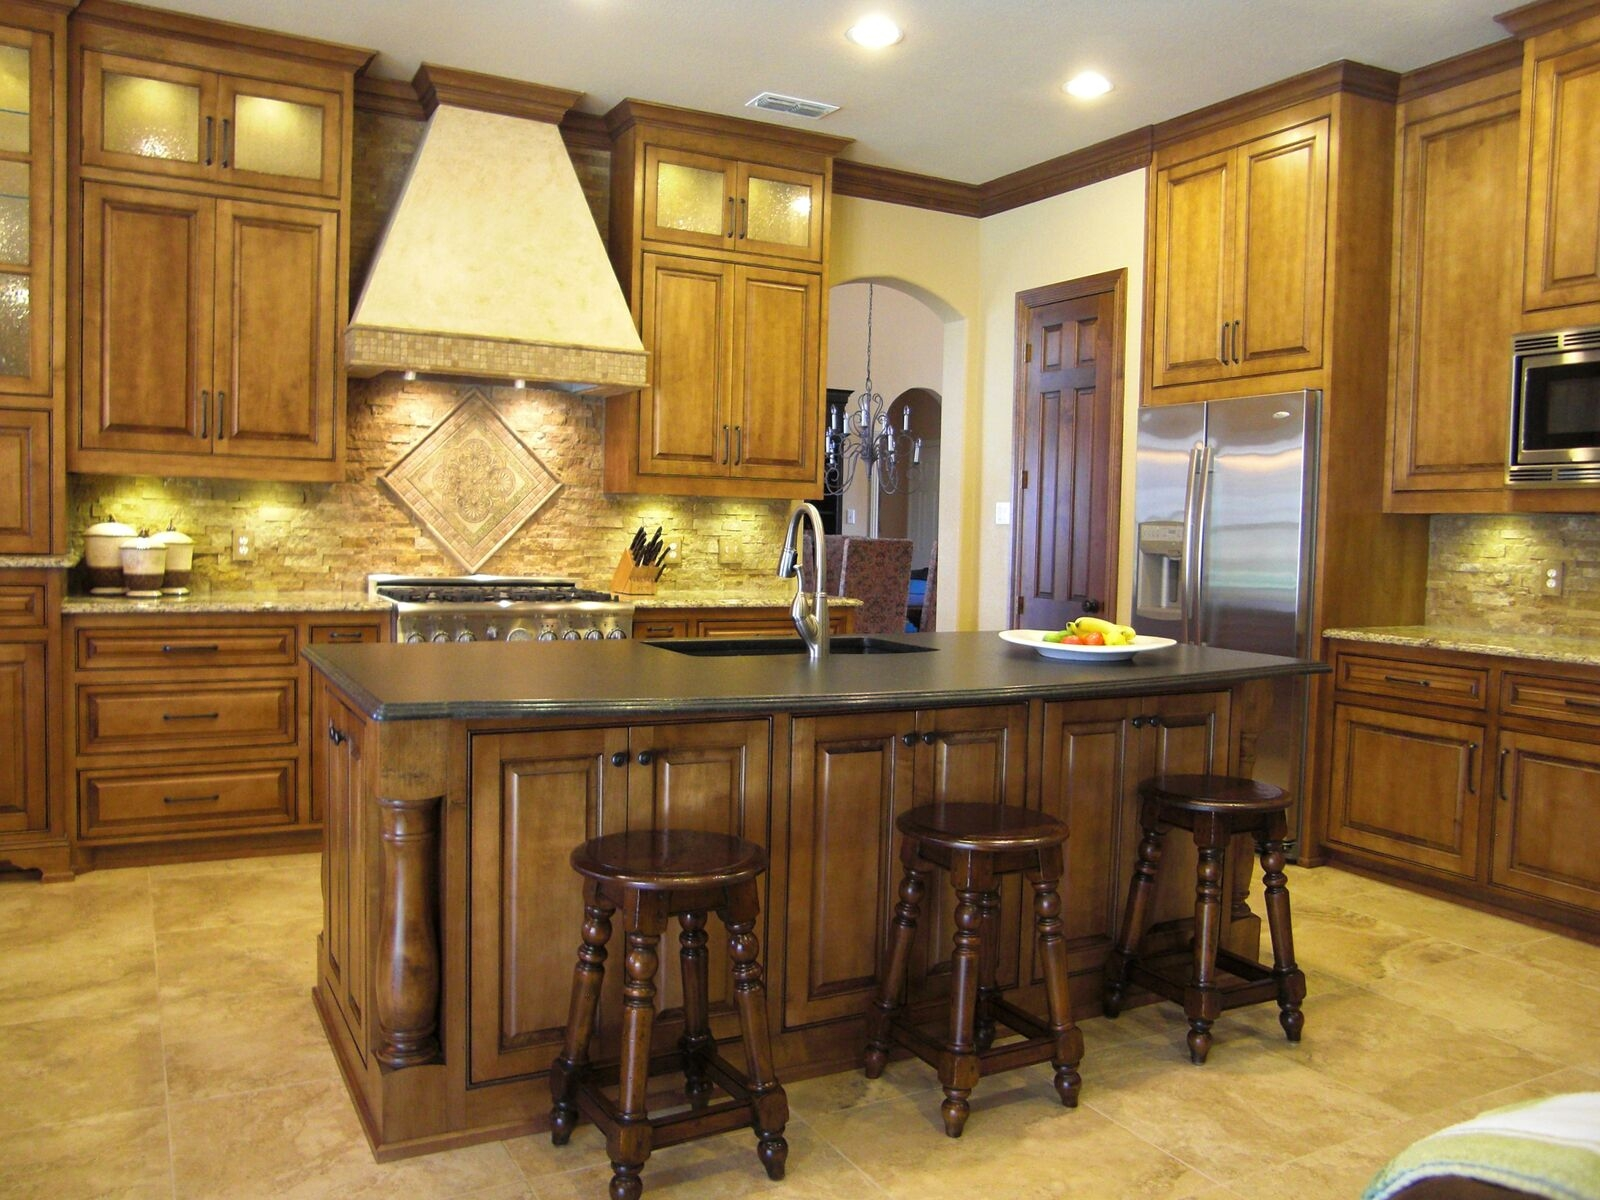 Custom Kitchen Cabinets Fort Worthchips kitchen bath remodeling dallasfort worth custom cabinets